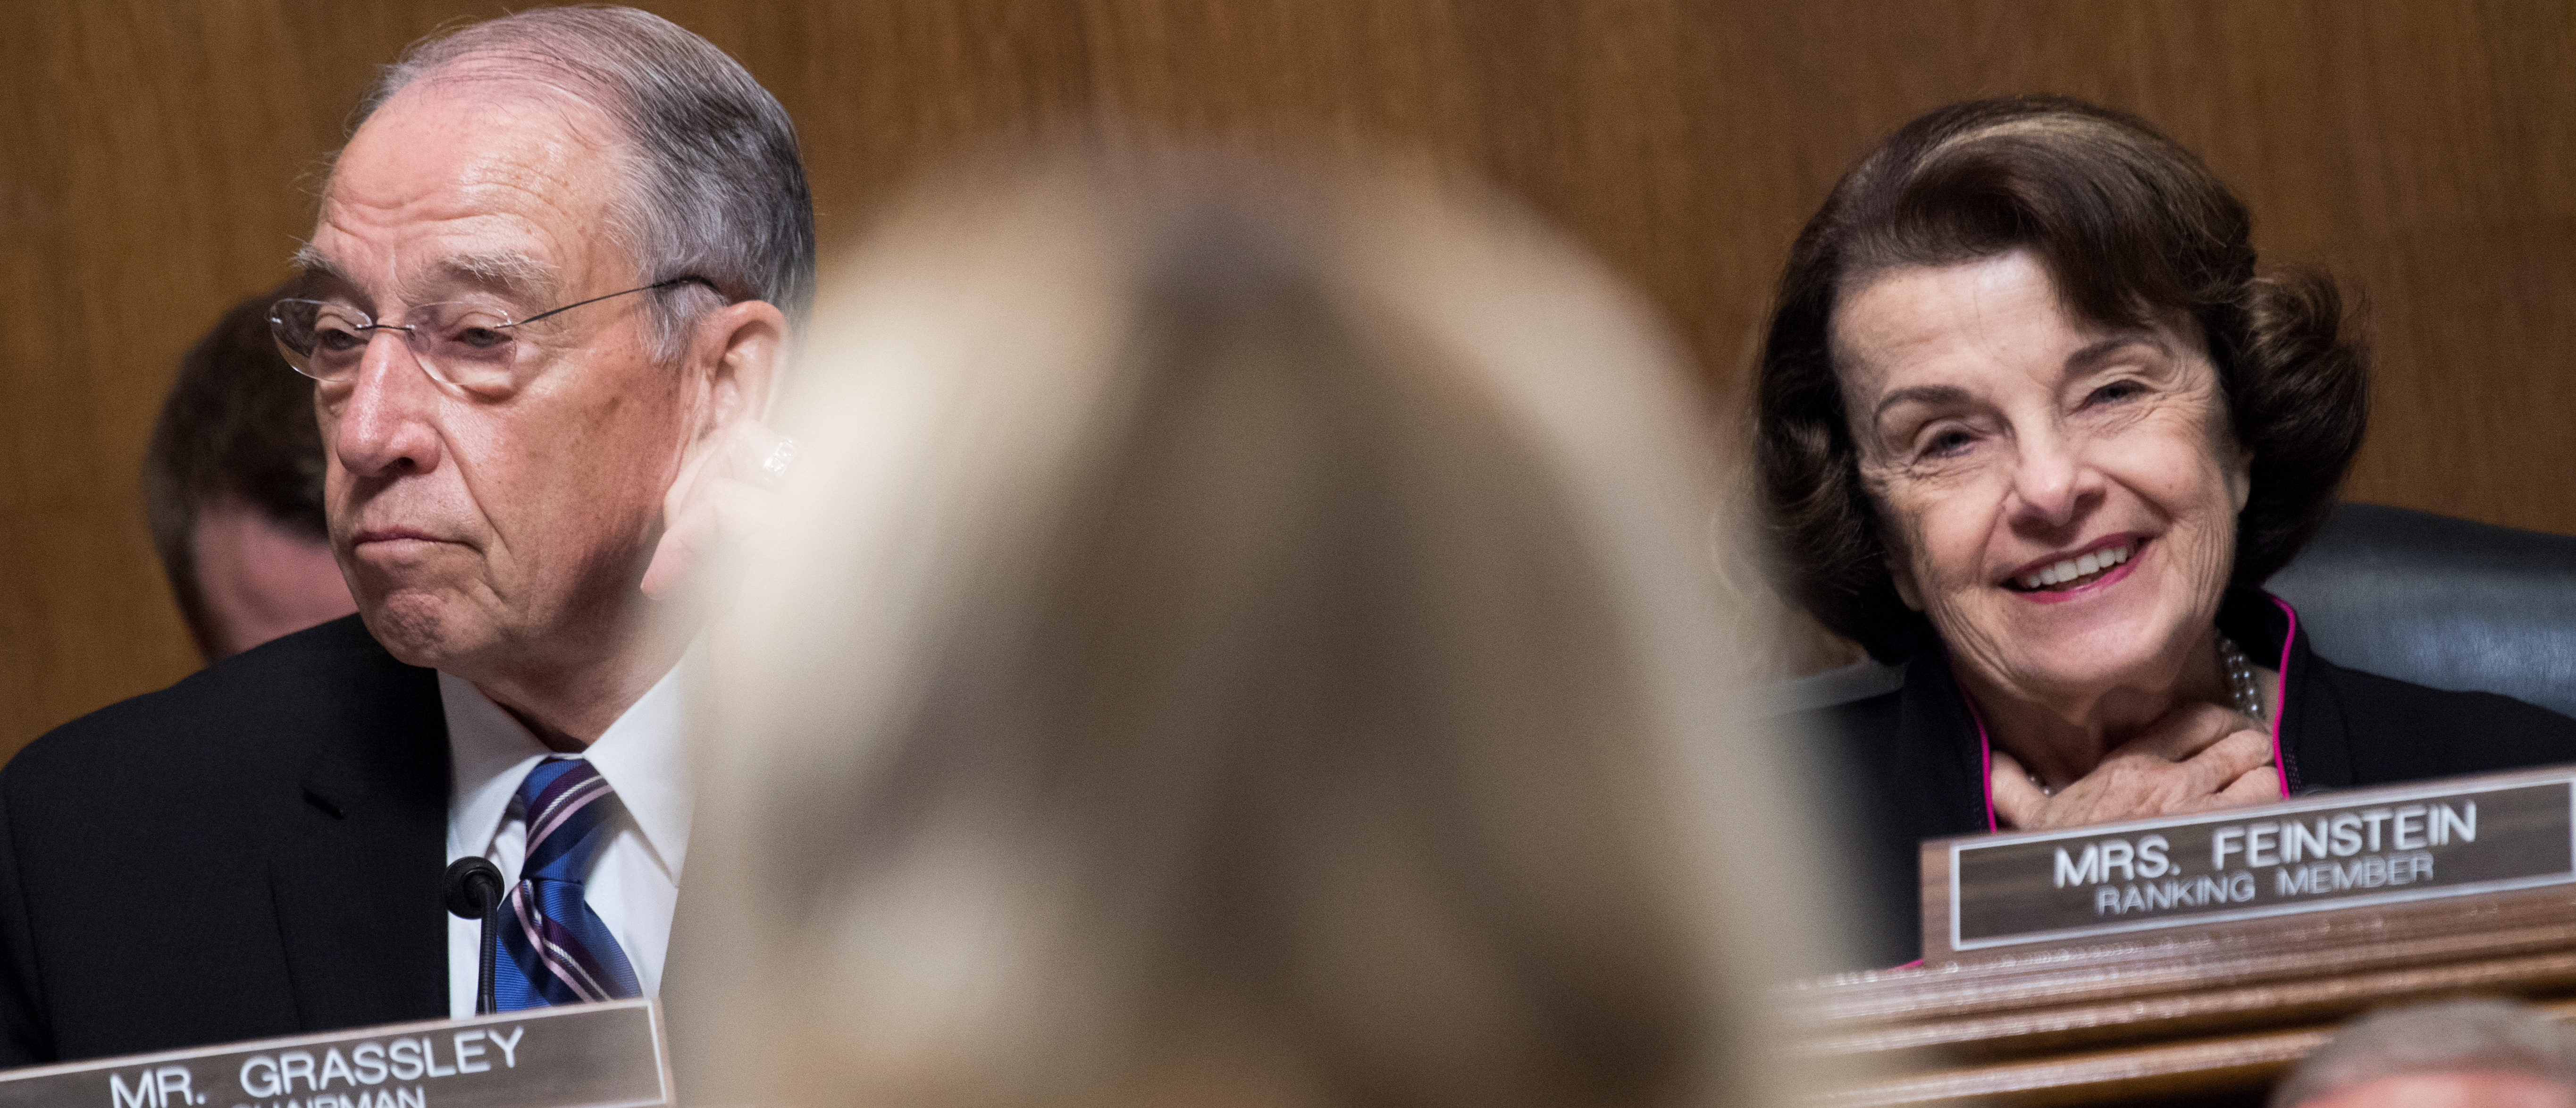 Chairman Charles Grassley, R-Iowa, and ranking member Sen. Dianne Feinstein, D-Calif., listen to Dr. Christine Blasey Ford testify during the Senate Judiciary Committee hearing on the nomination of Brett M. Kavanaugh to be an associate justice of the Supreme Court of the United States, focusing on allegations of sexual assault by Kavanaugh against Christine Blasey Ford in the early 1980s, in Washington, DC, U.S., September 27, 2018. Picture taken September 27, 2018. Tom Williams/Pool via REUTERS - RC17286589F0